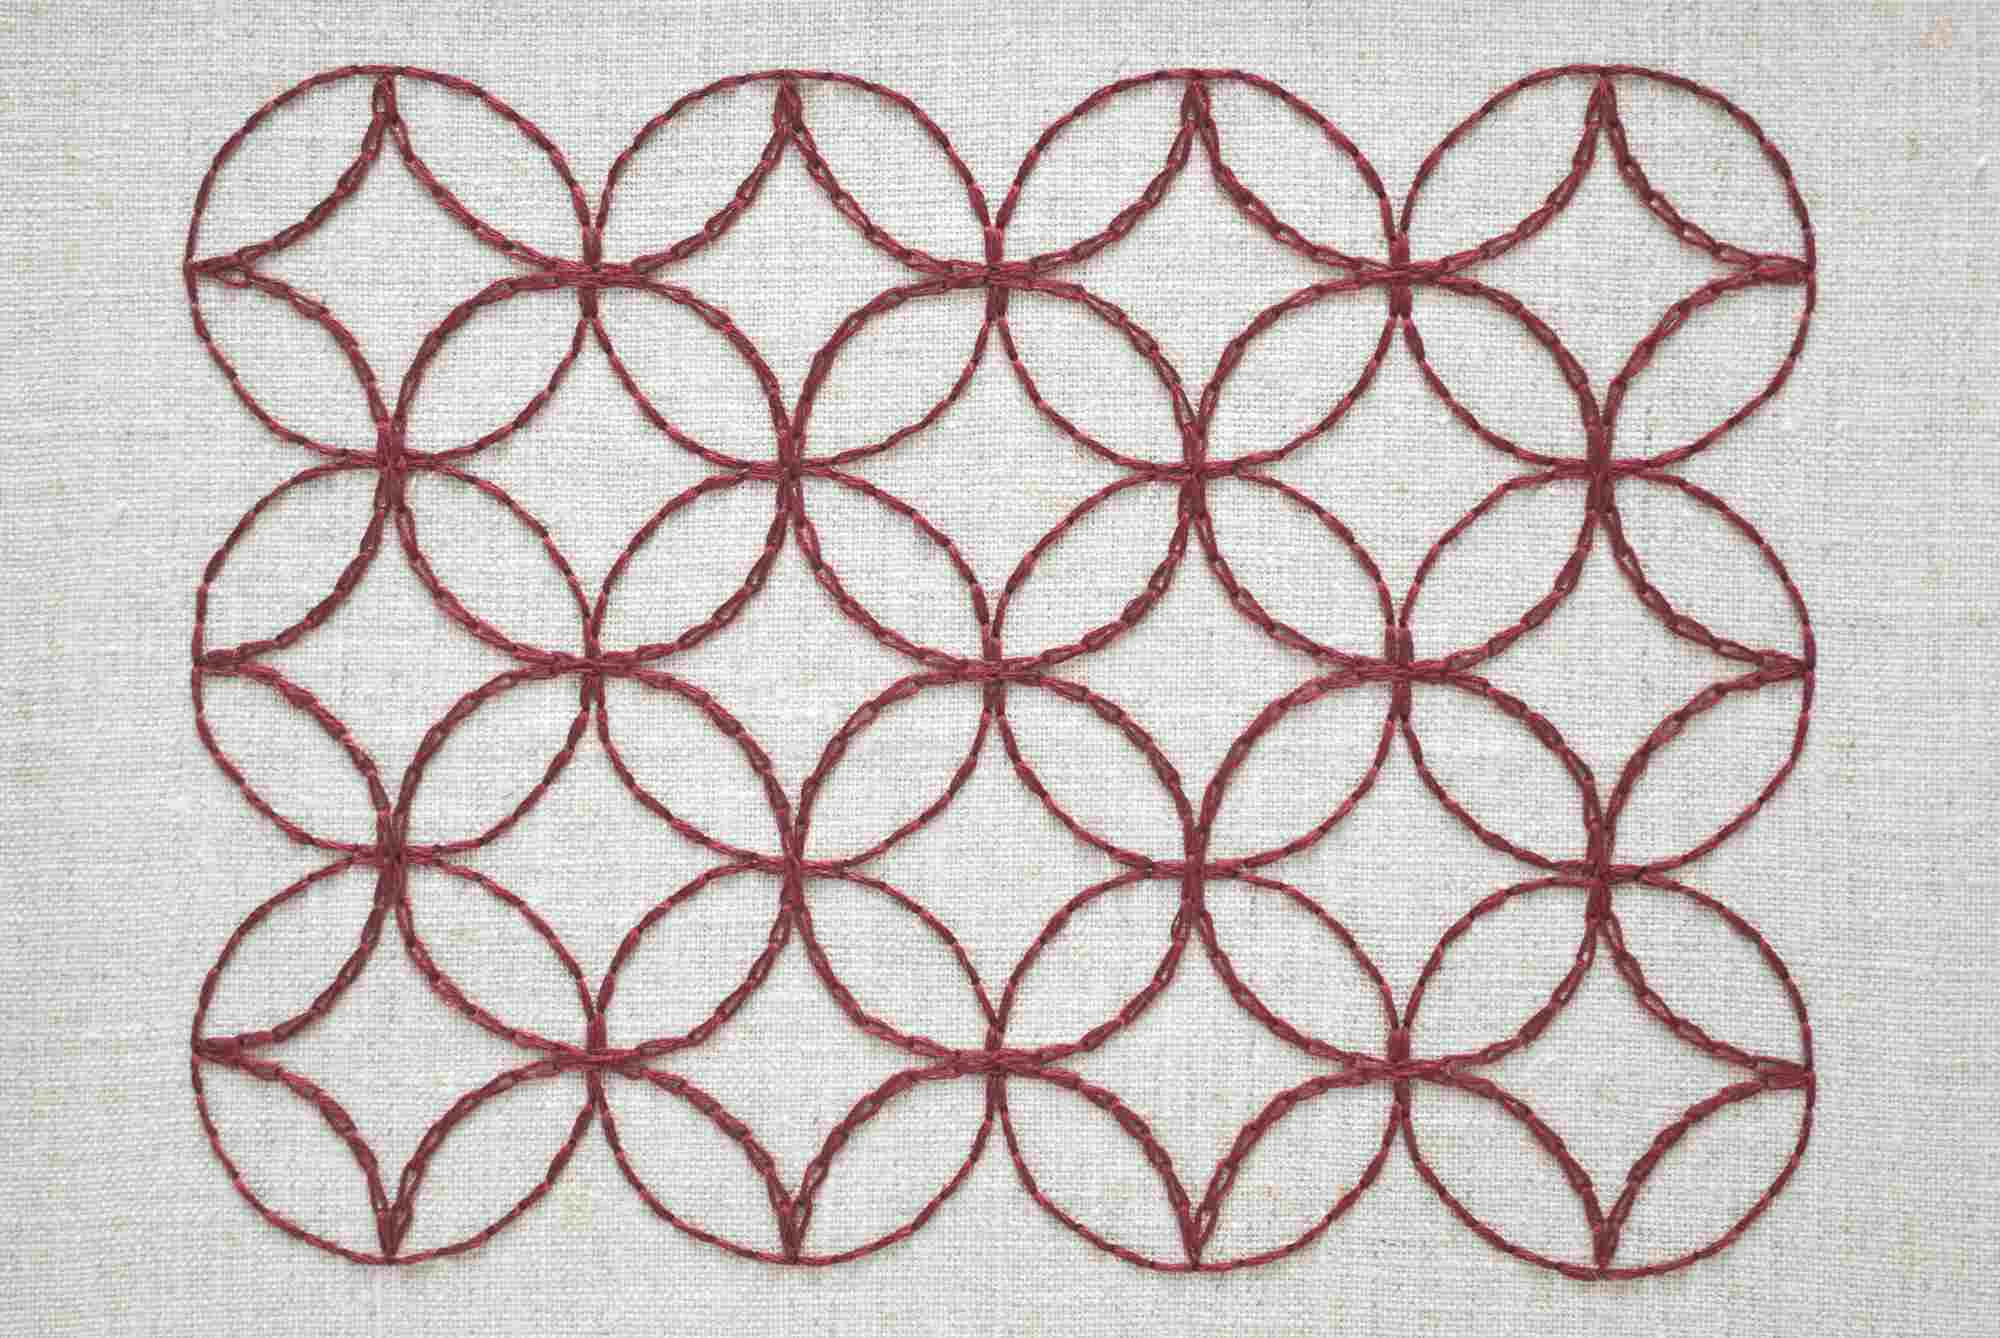 Sashiko Patterns New Design